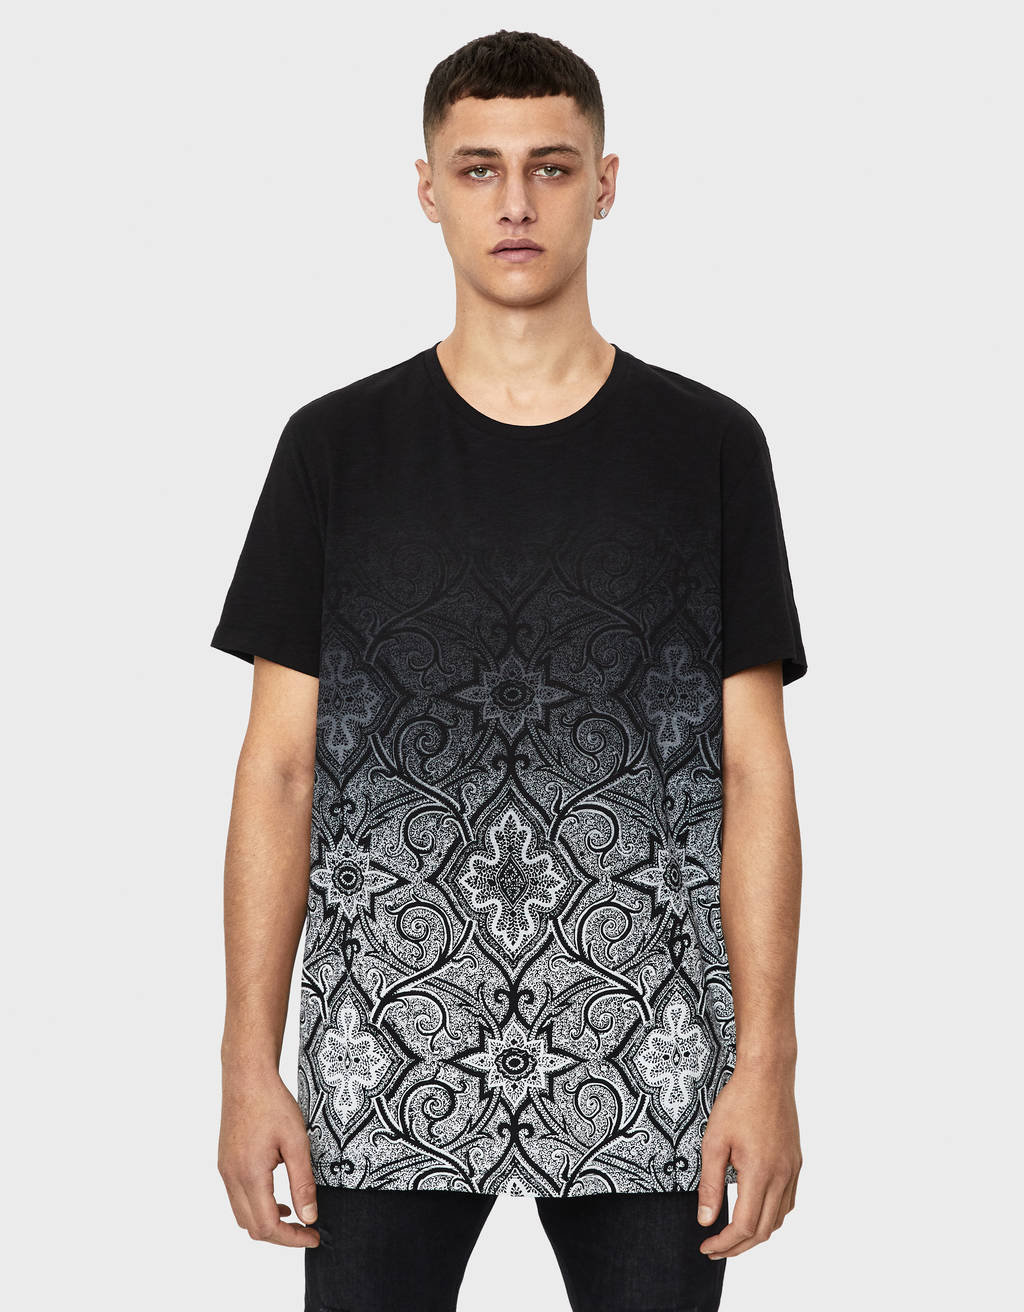 T-shirt com estampado degradé